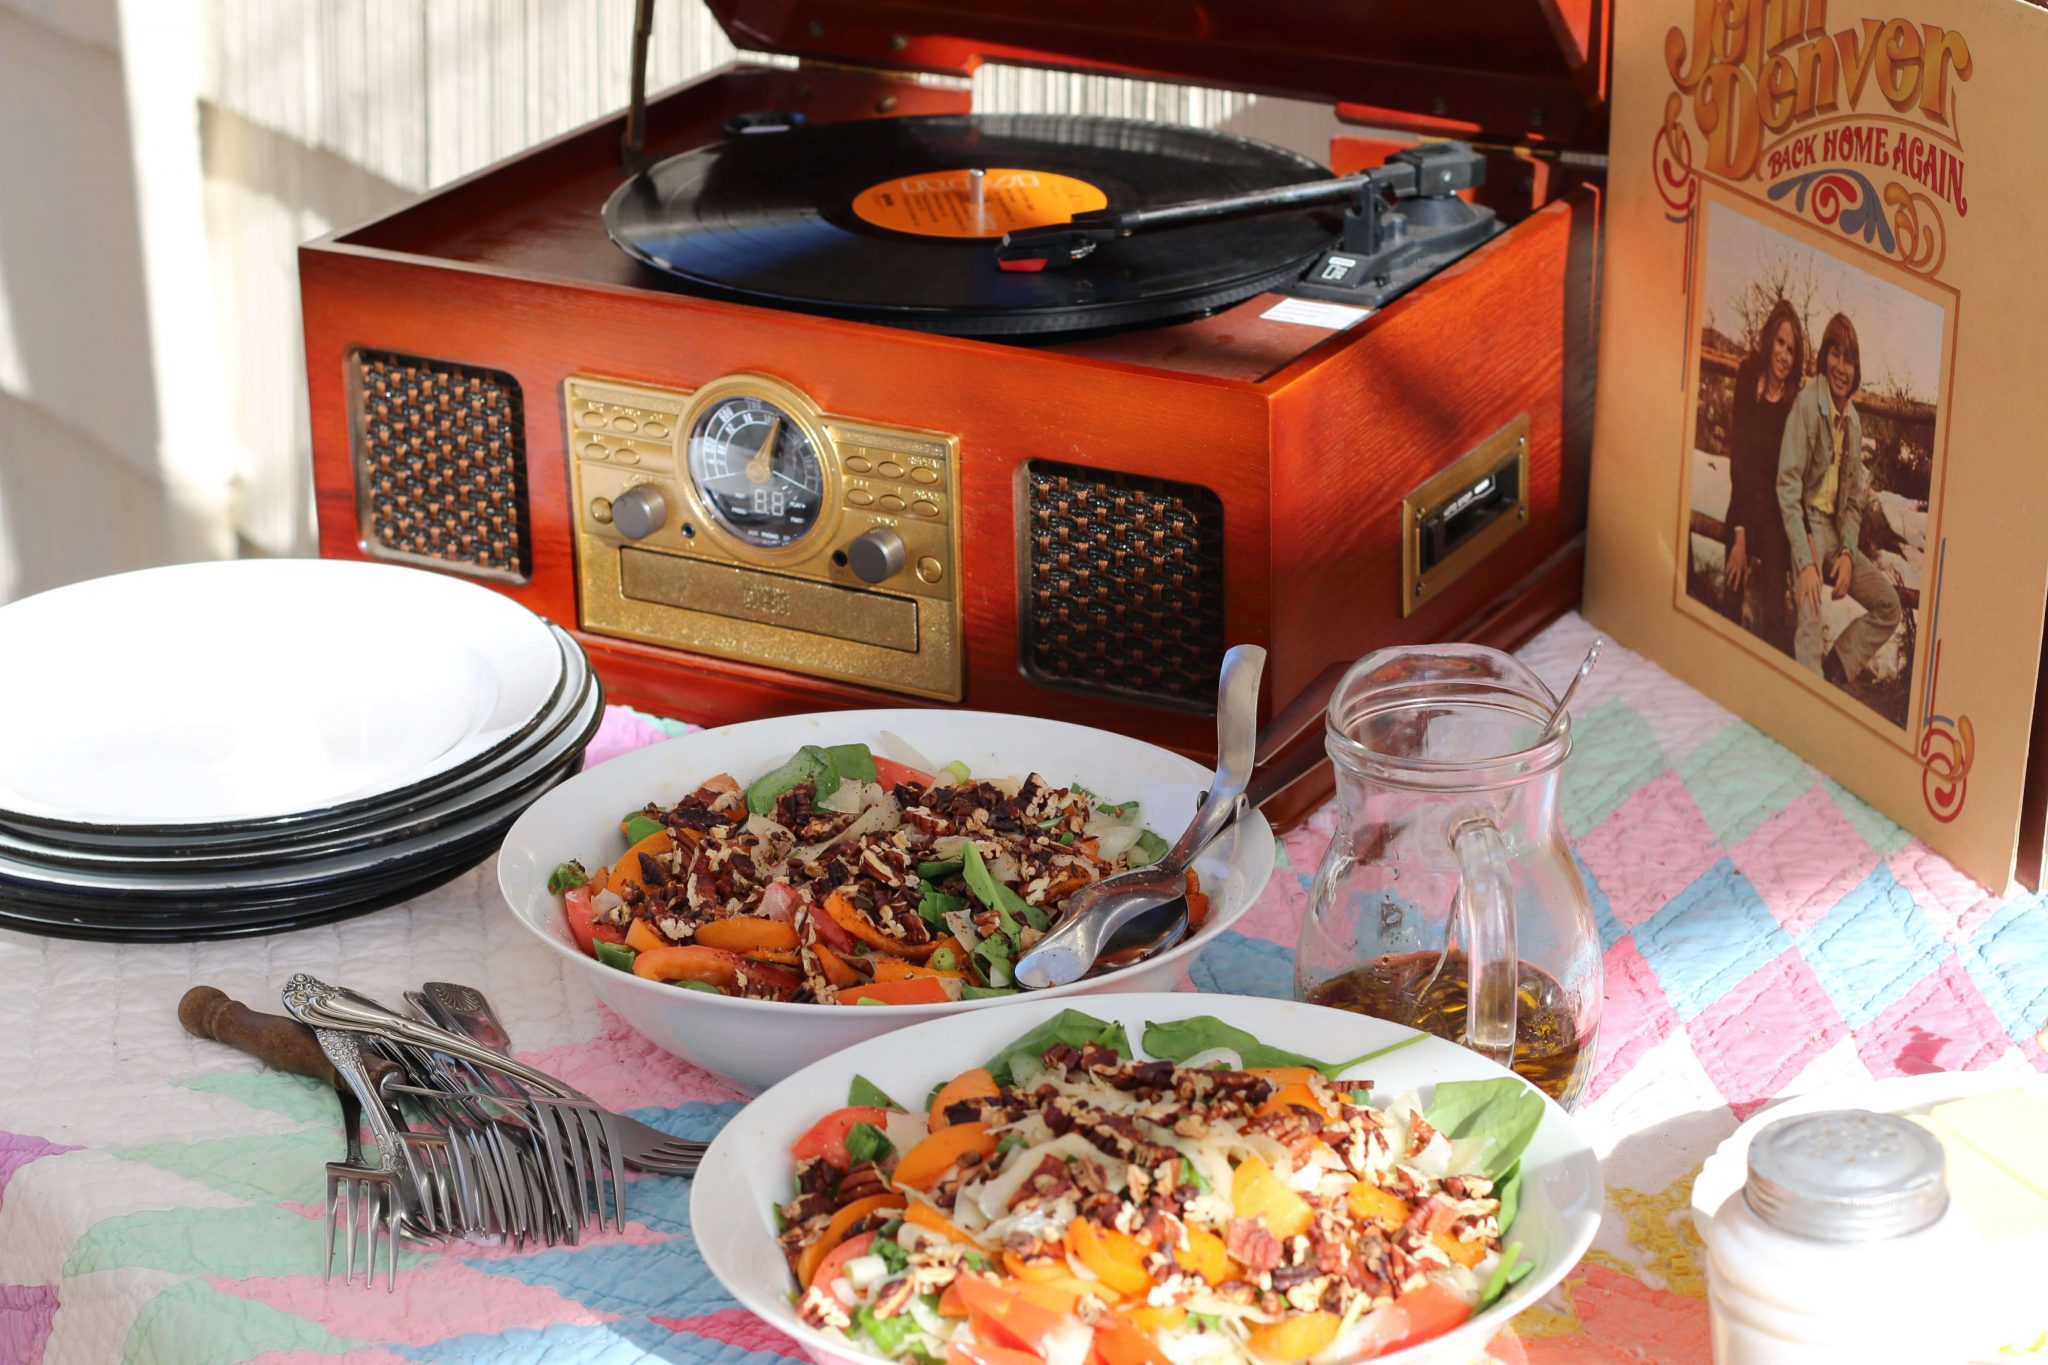 This is so pretty, I love eating outdoors. And the record player, and the old quilt <3